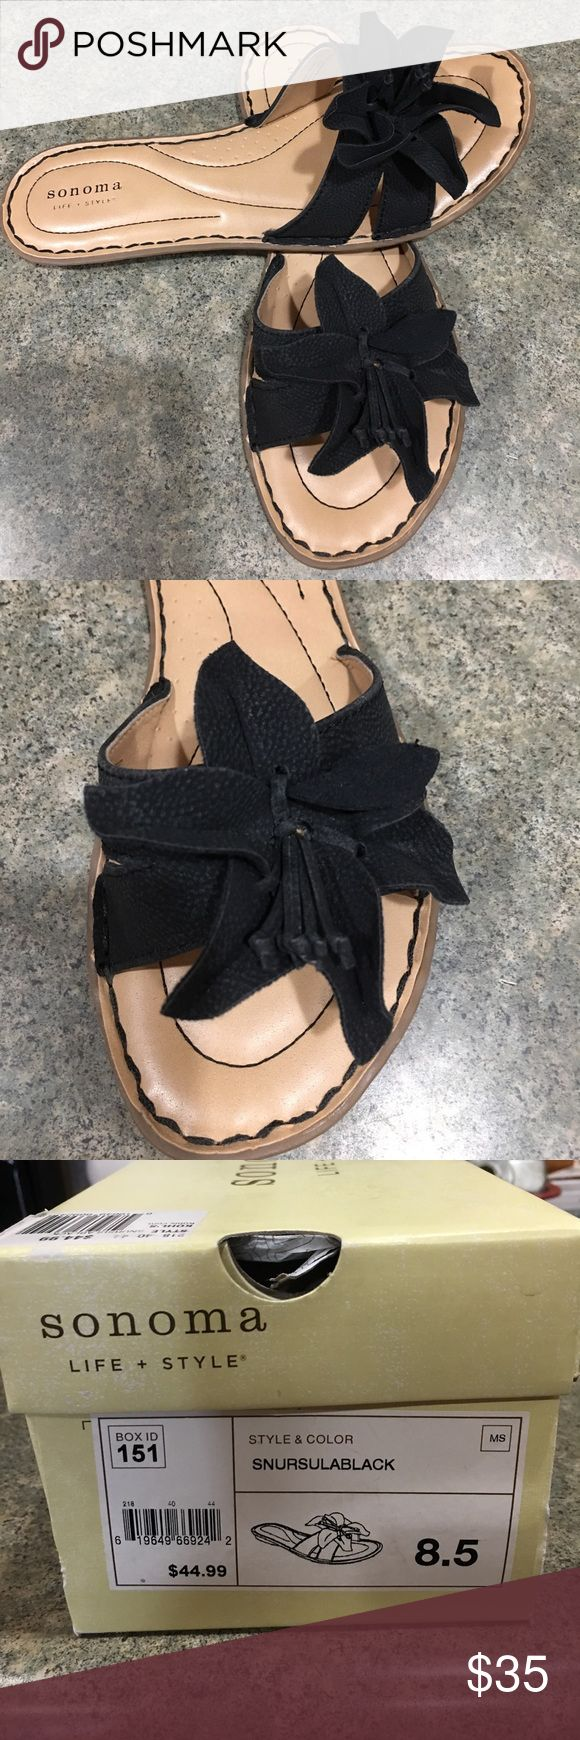 Sonoma black flower ladies sandals Cute ladies black sandal with cute flower. Brand new with box and wrapping. Never worn. They are so cute with jeans, capris, and summer dresses. Sonoma Shoes Sandals